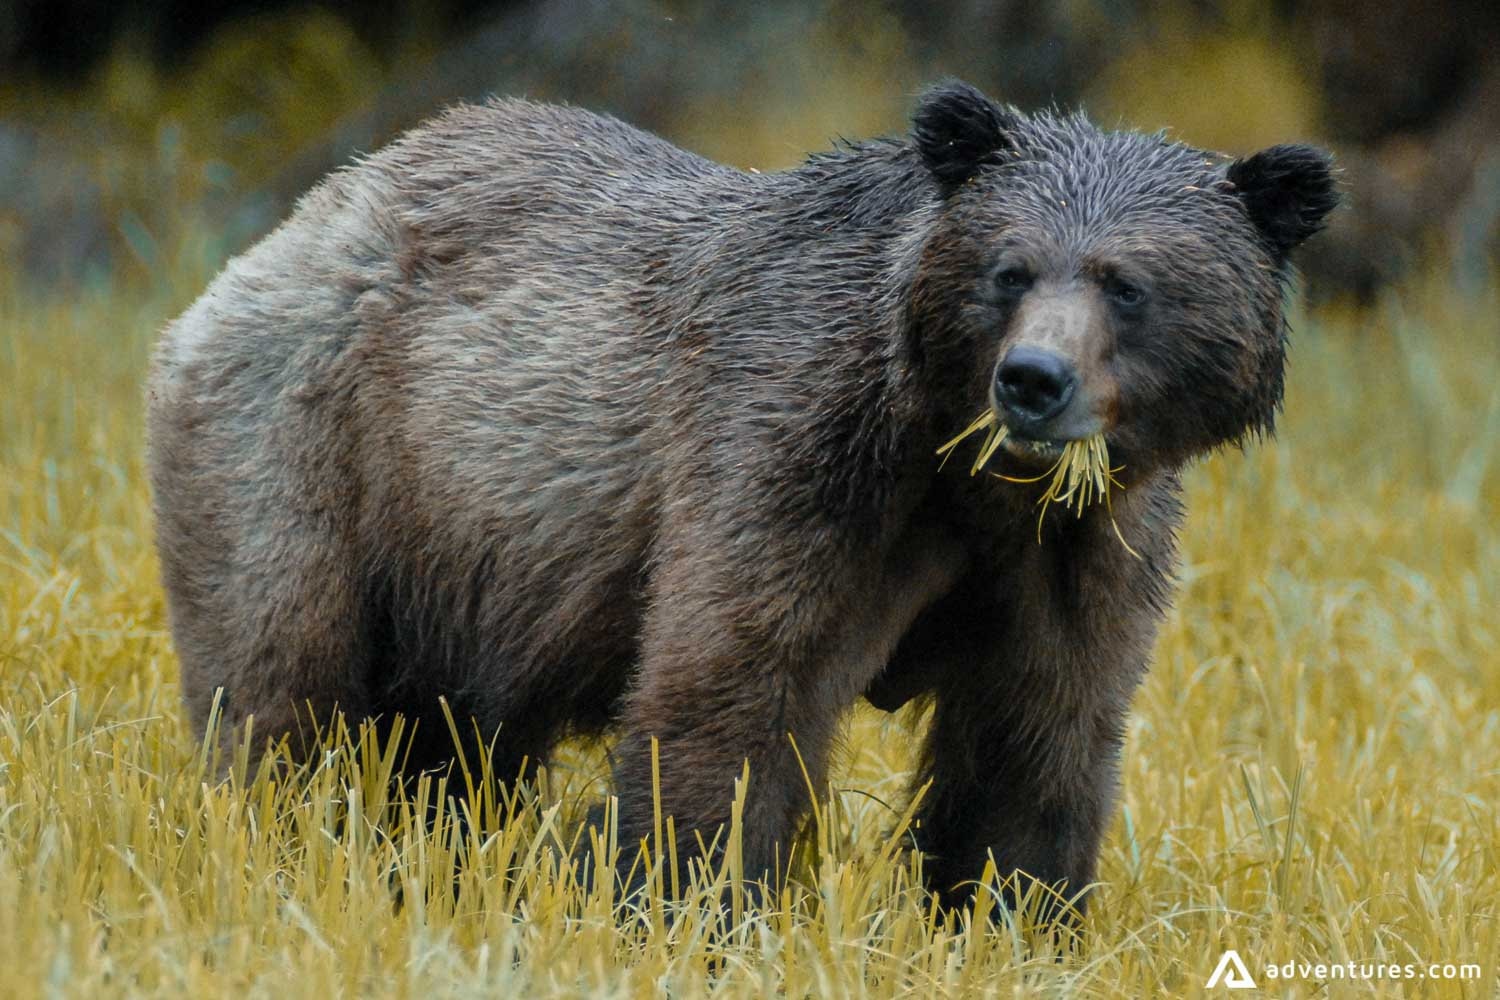 Brown grizzly bear eating grass